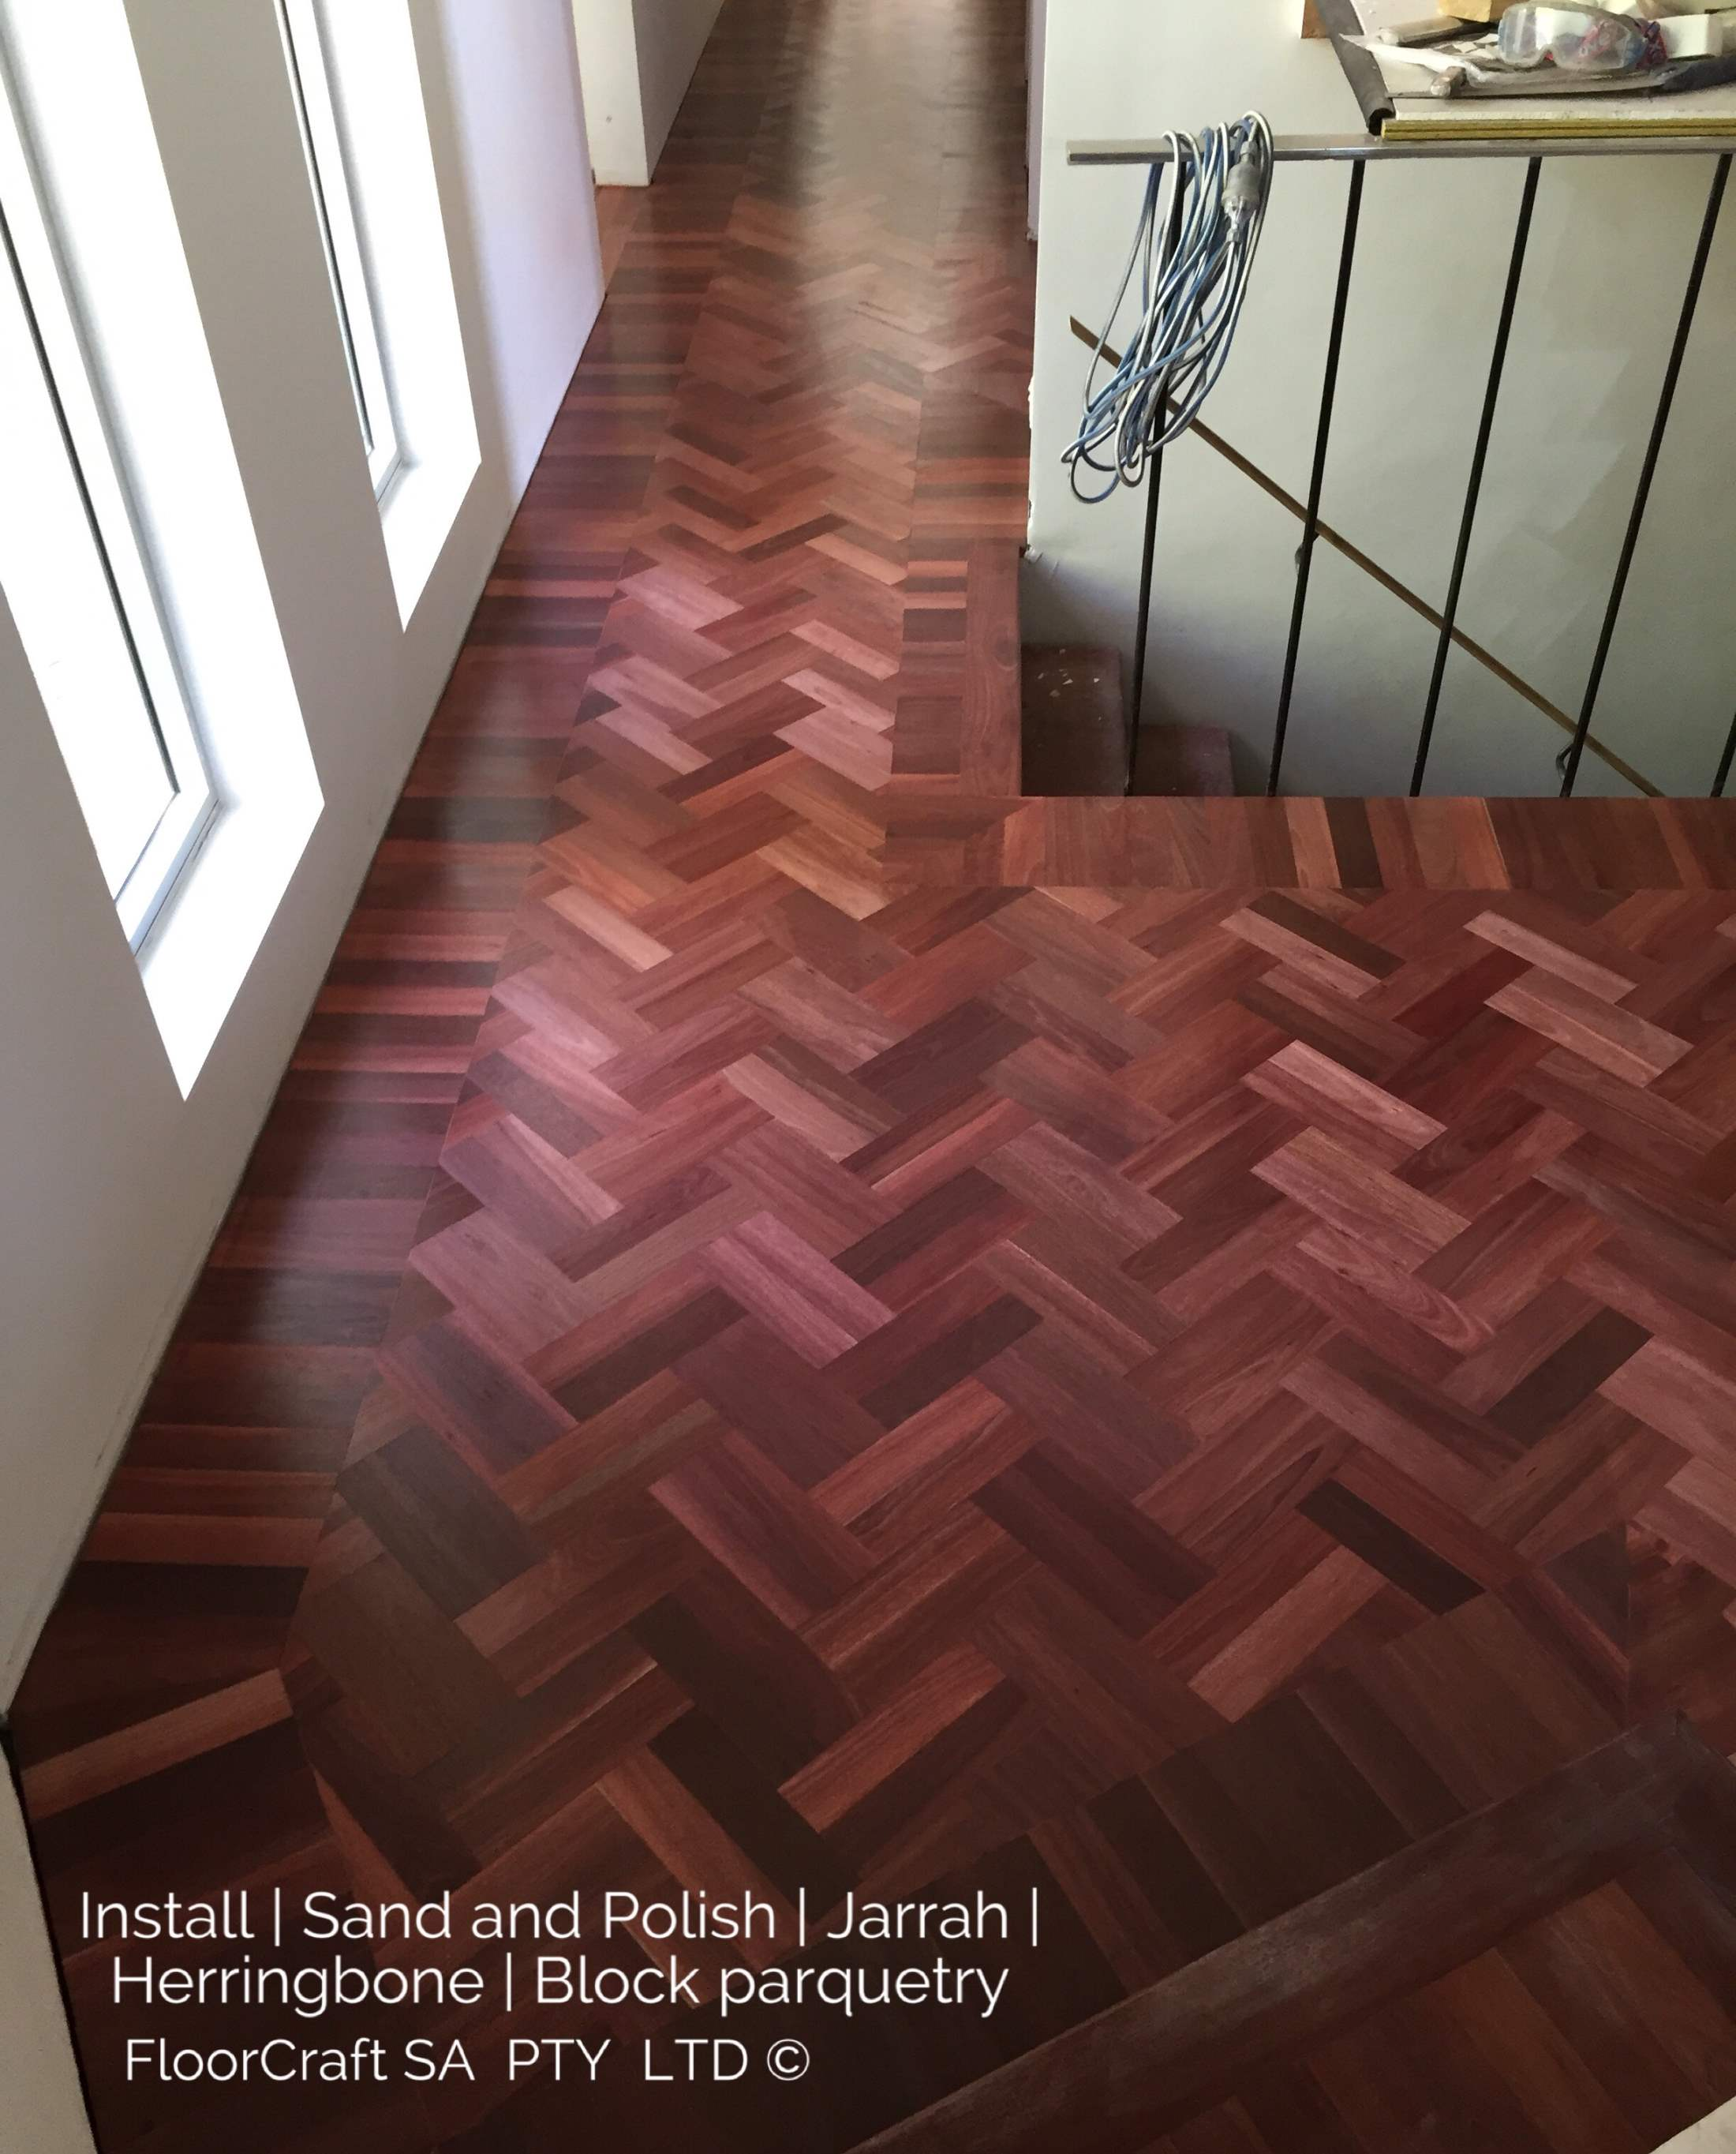 Adelaide Timber Flooring services